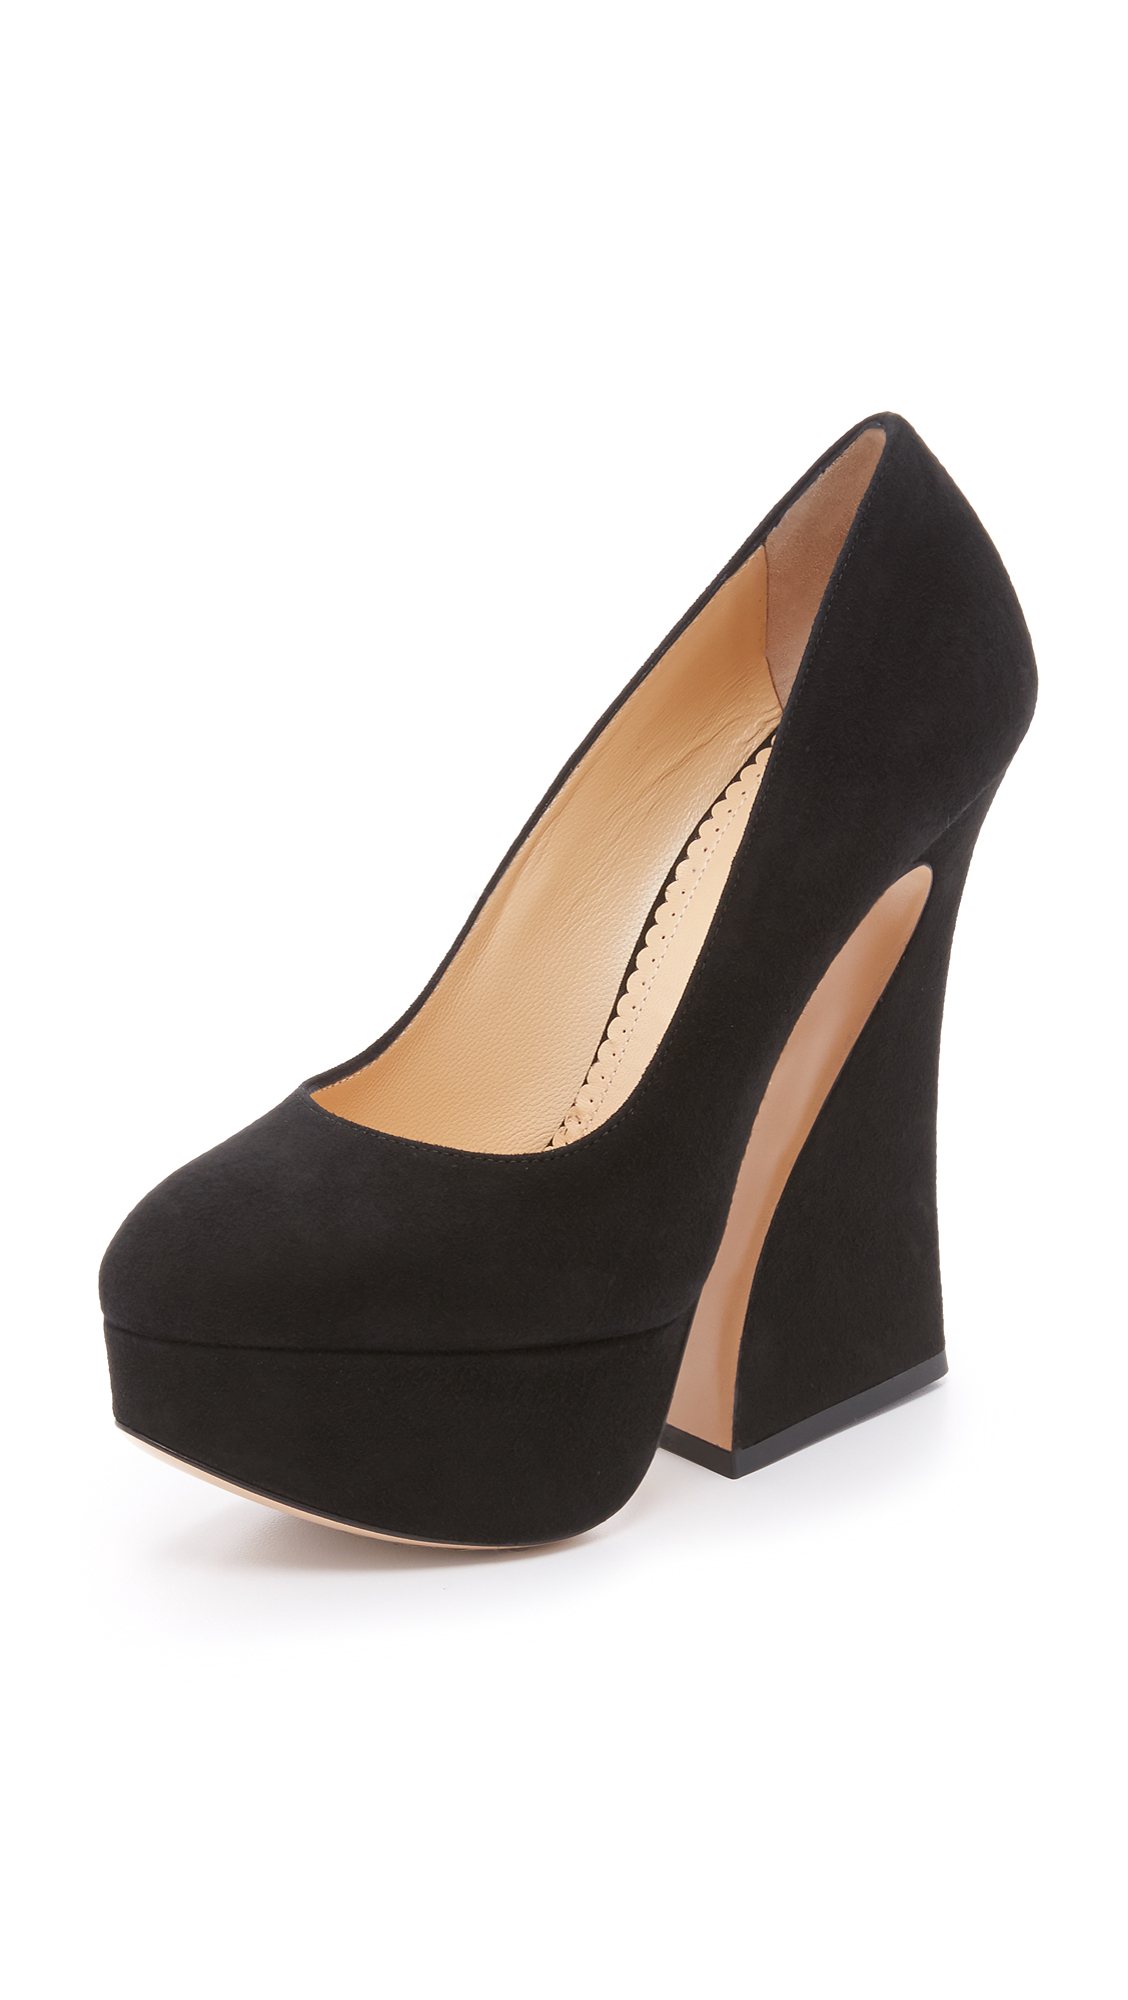 Charlotte Olympia Millicent Pumps - Black at Shopbop